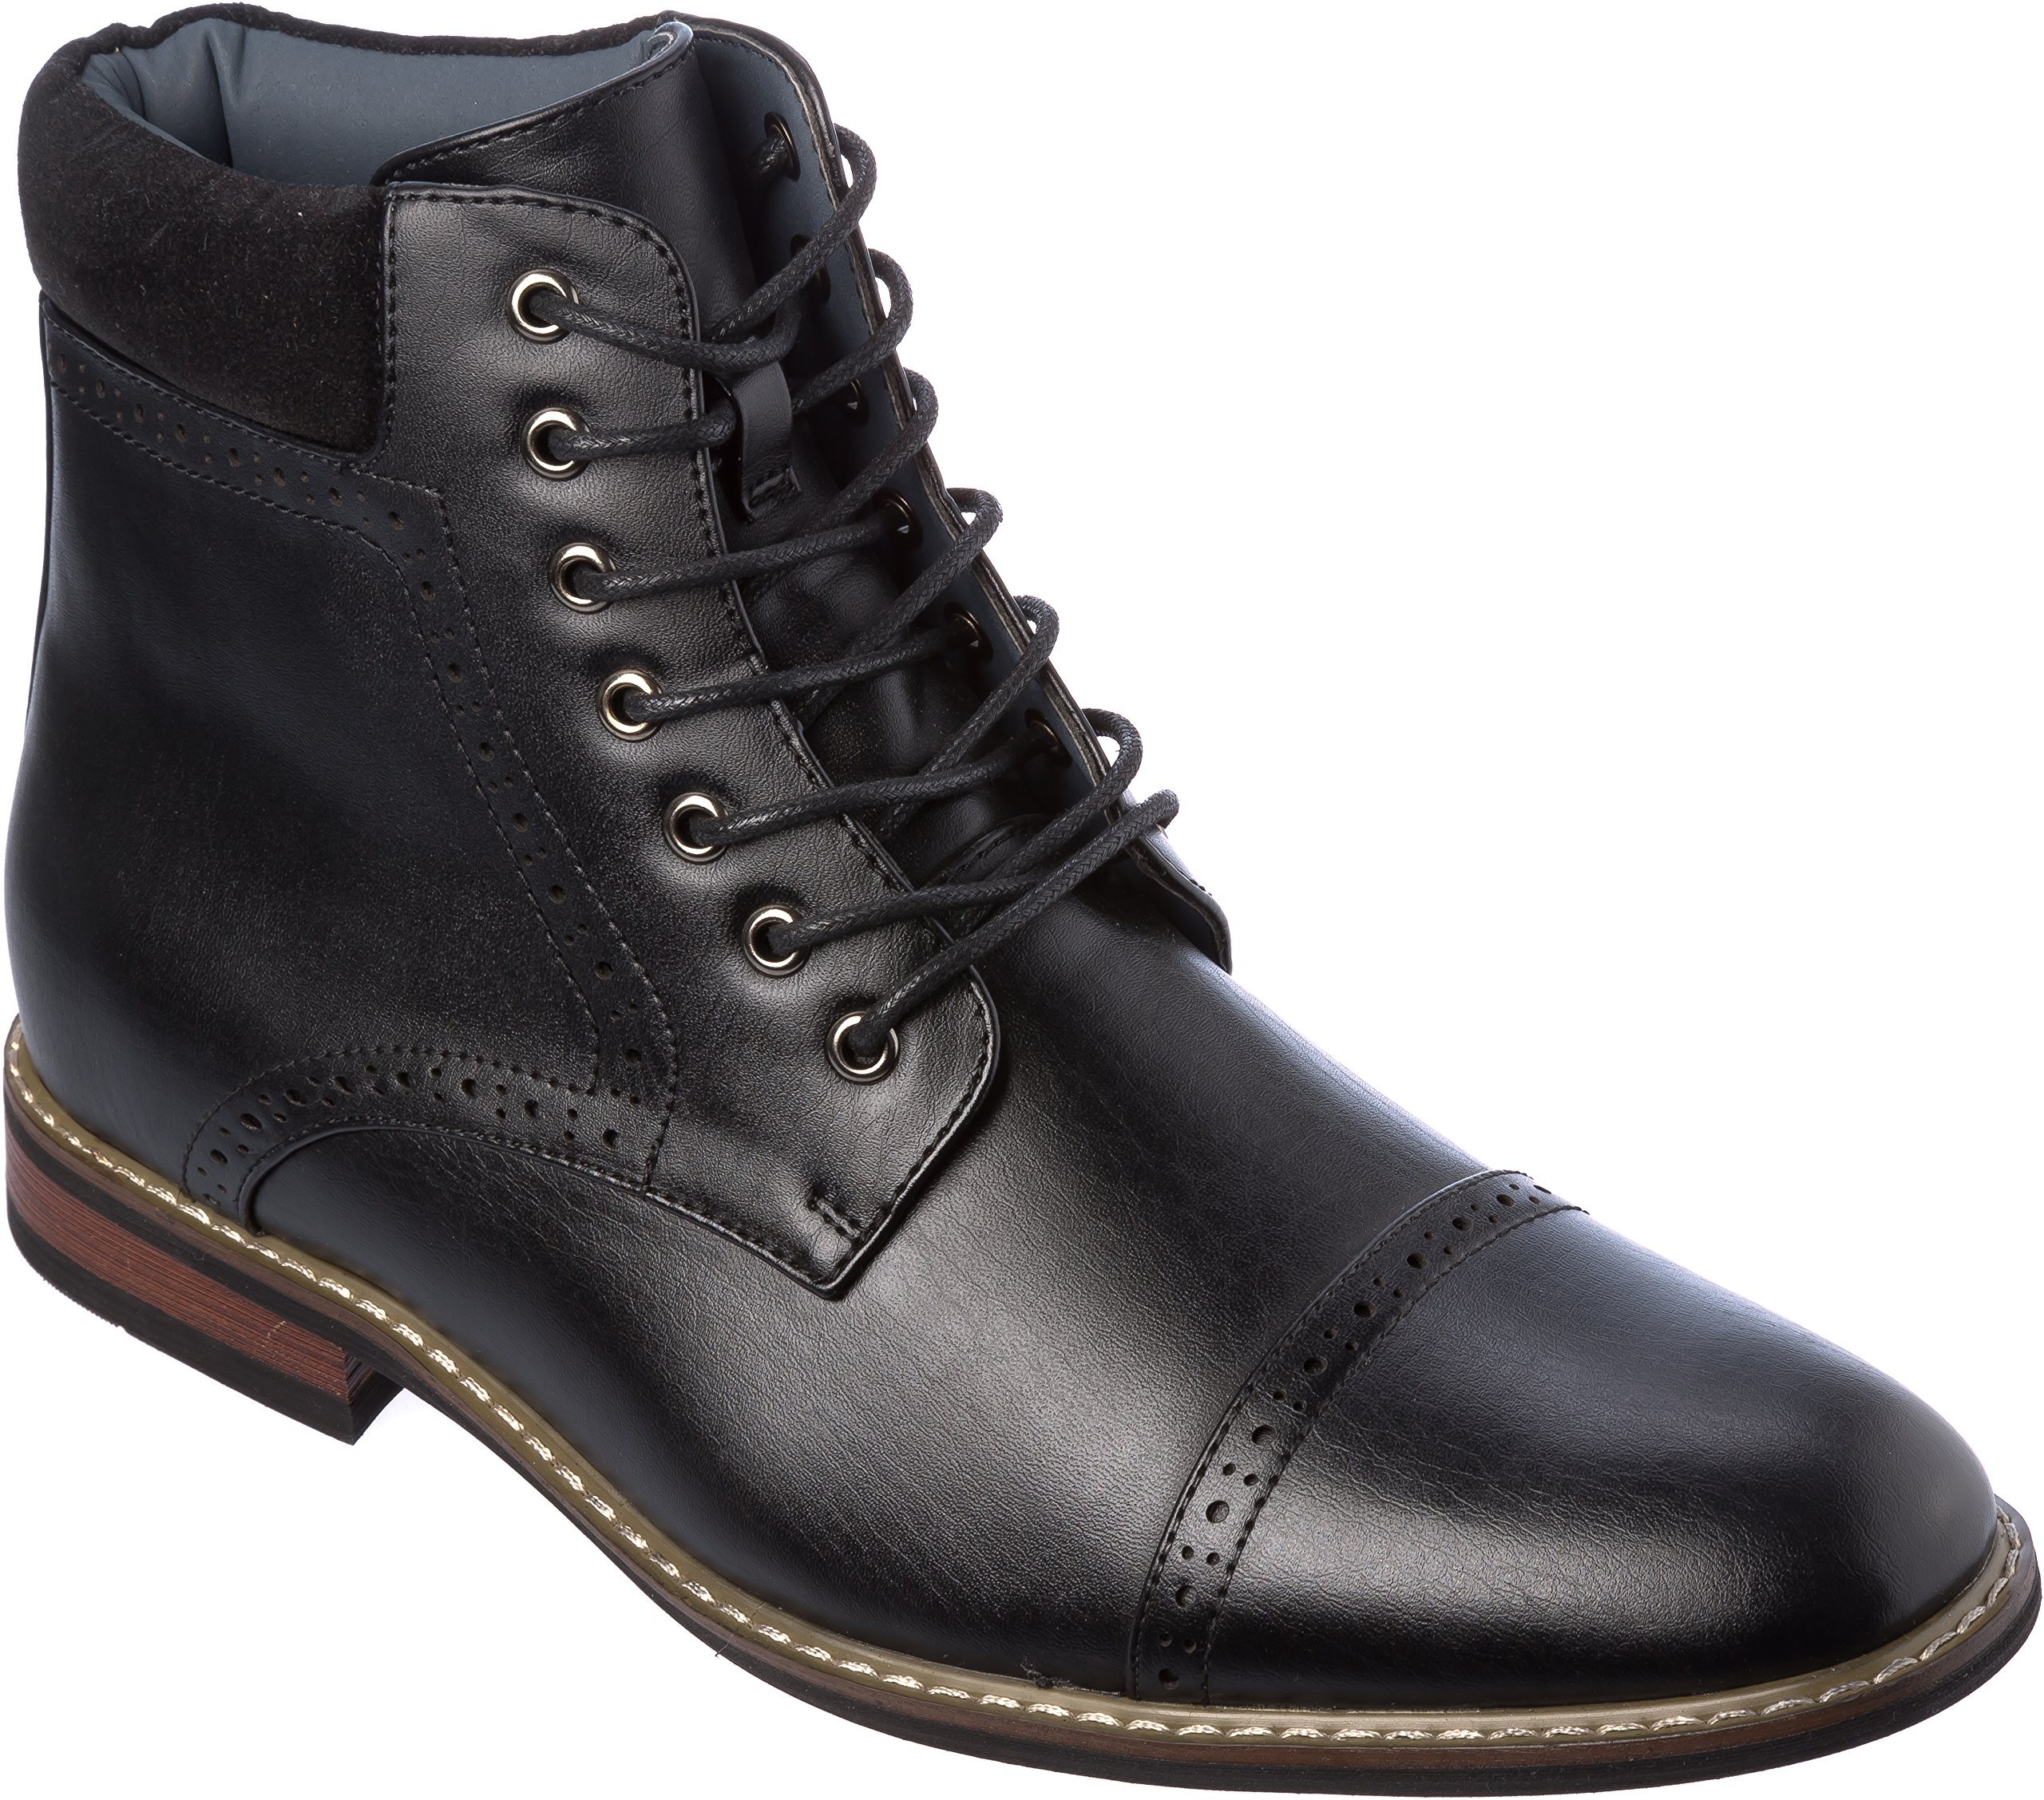 ottawa04 Mens Western Style Cow-Boy Boots PU-Leather Black Dress-Shoes Size 10.5